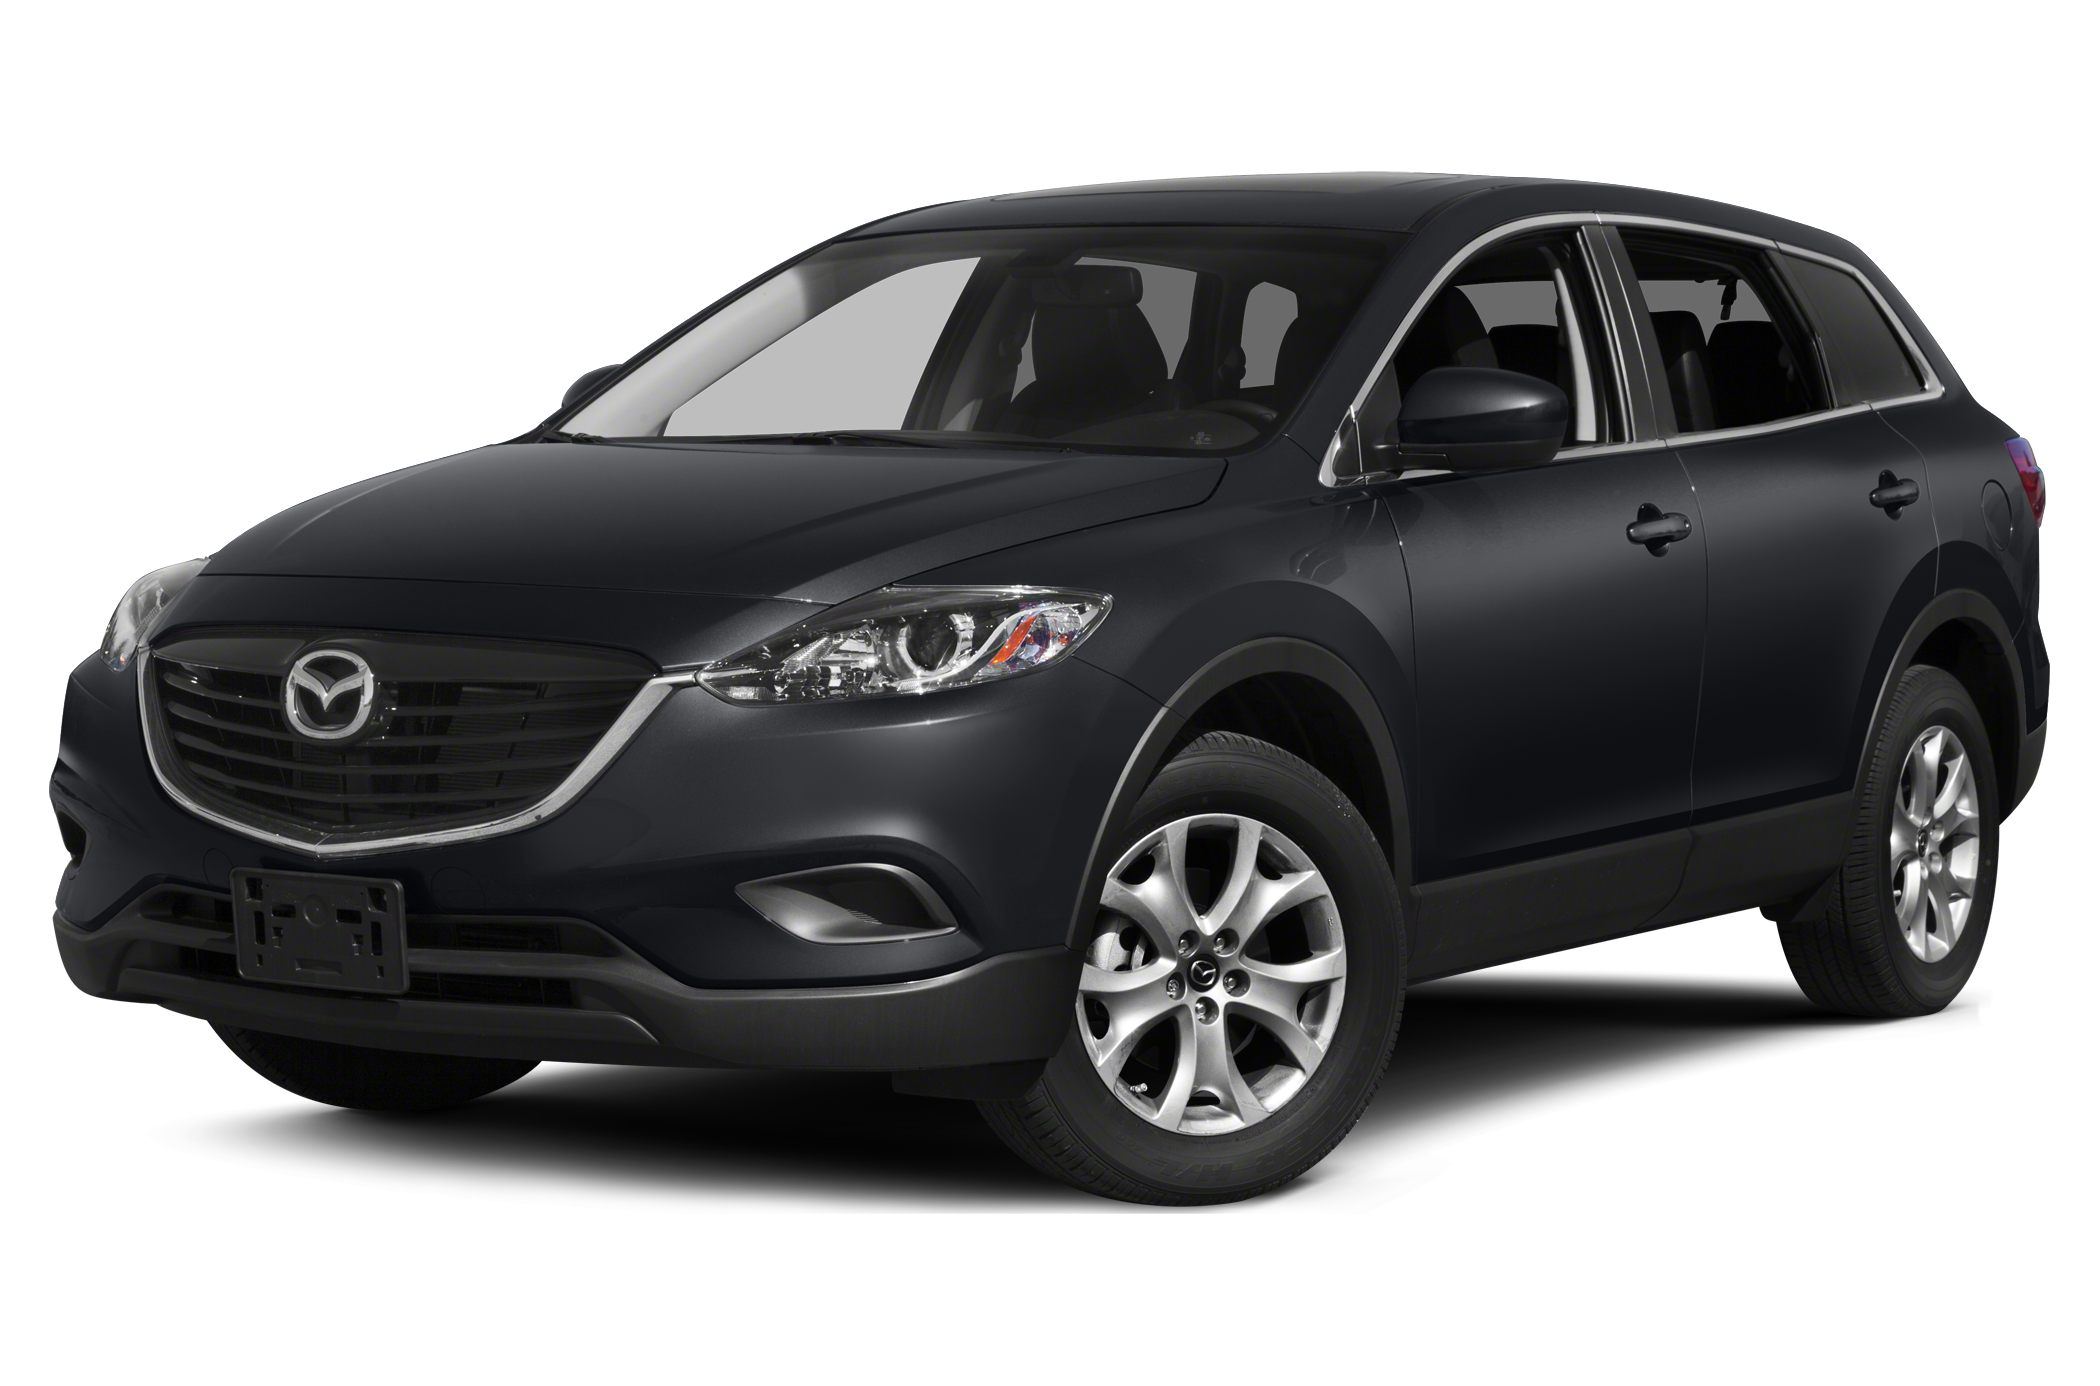 2013 Mazda CX-9 Touring SUV for sale in Hurst for $23,994 with 41,971 miles